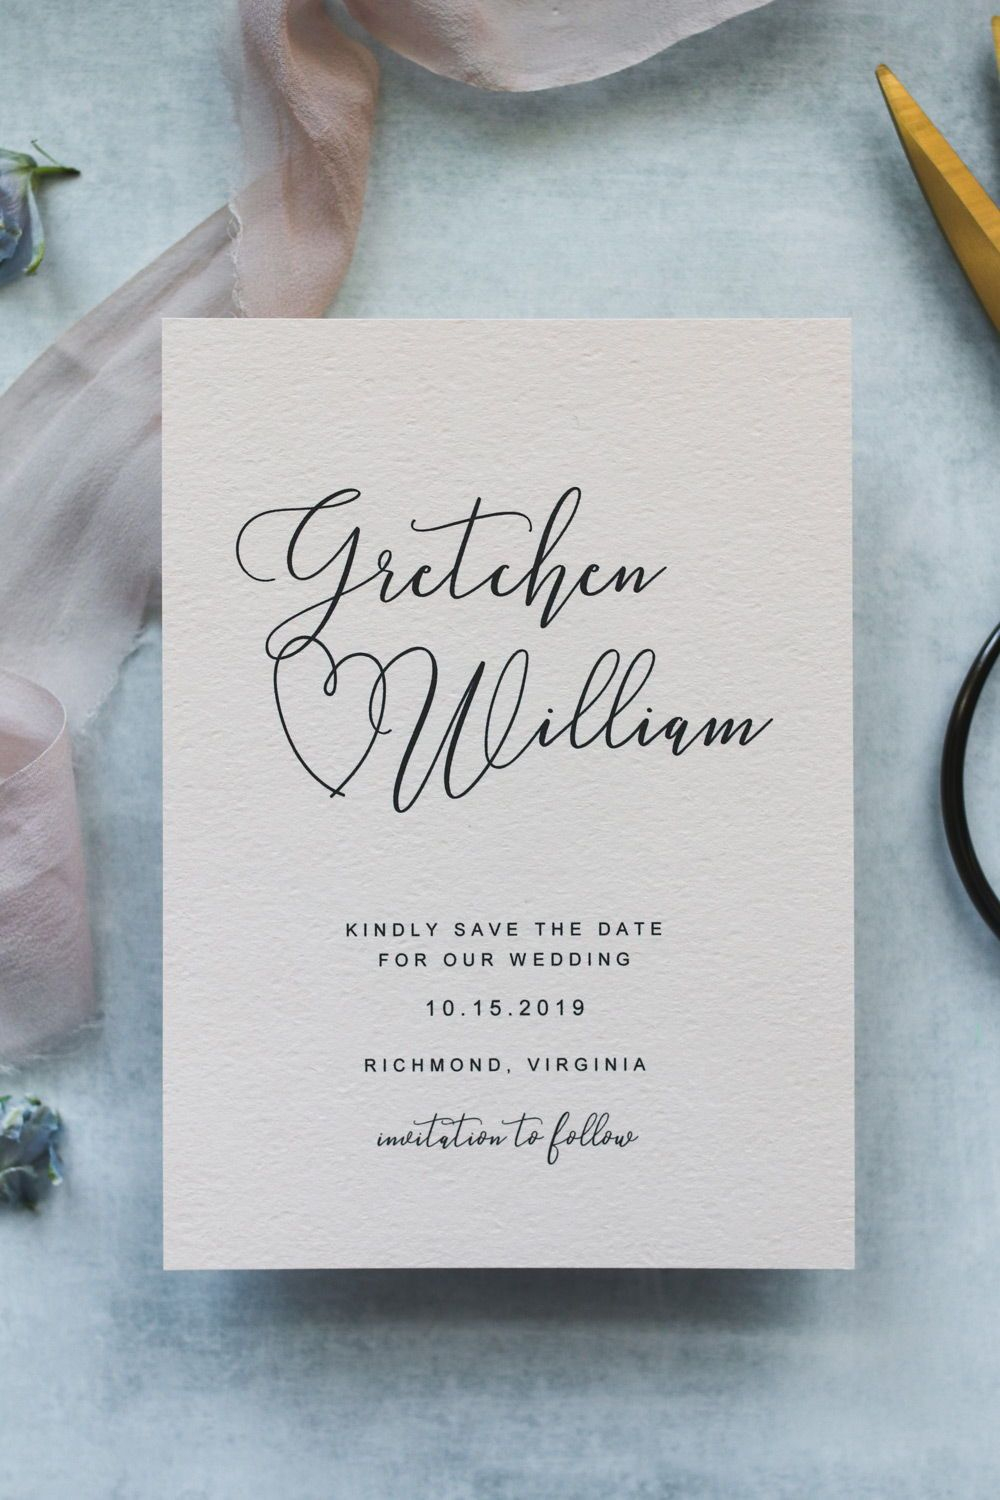 Free Save The Date Templates | Save The Date Ideas | Save The Date - Free Printable Save The Date Invitation Templates